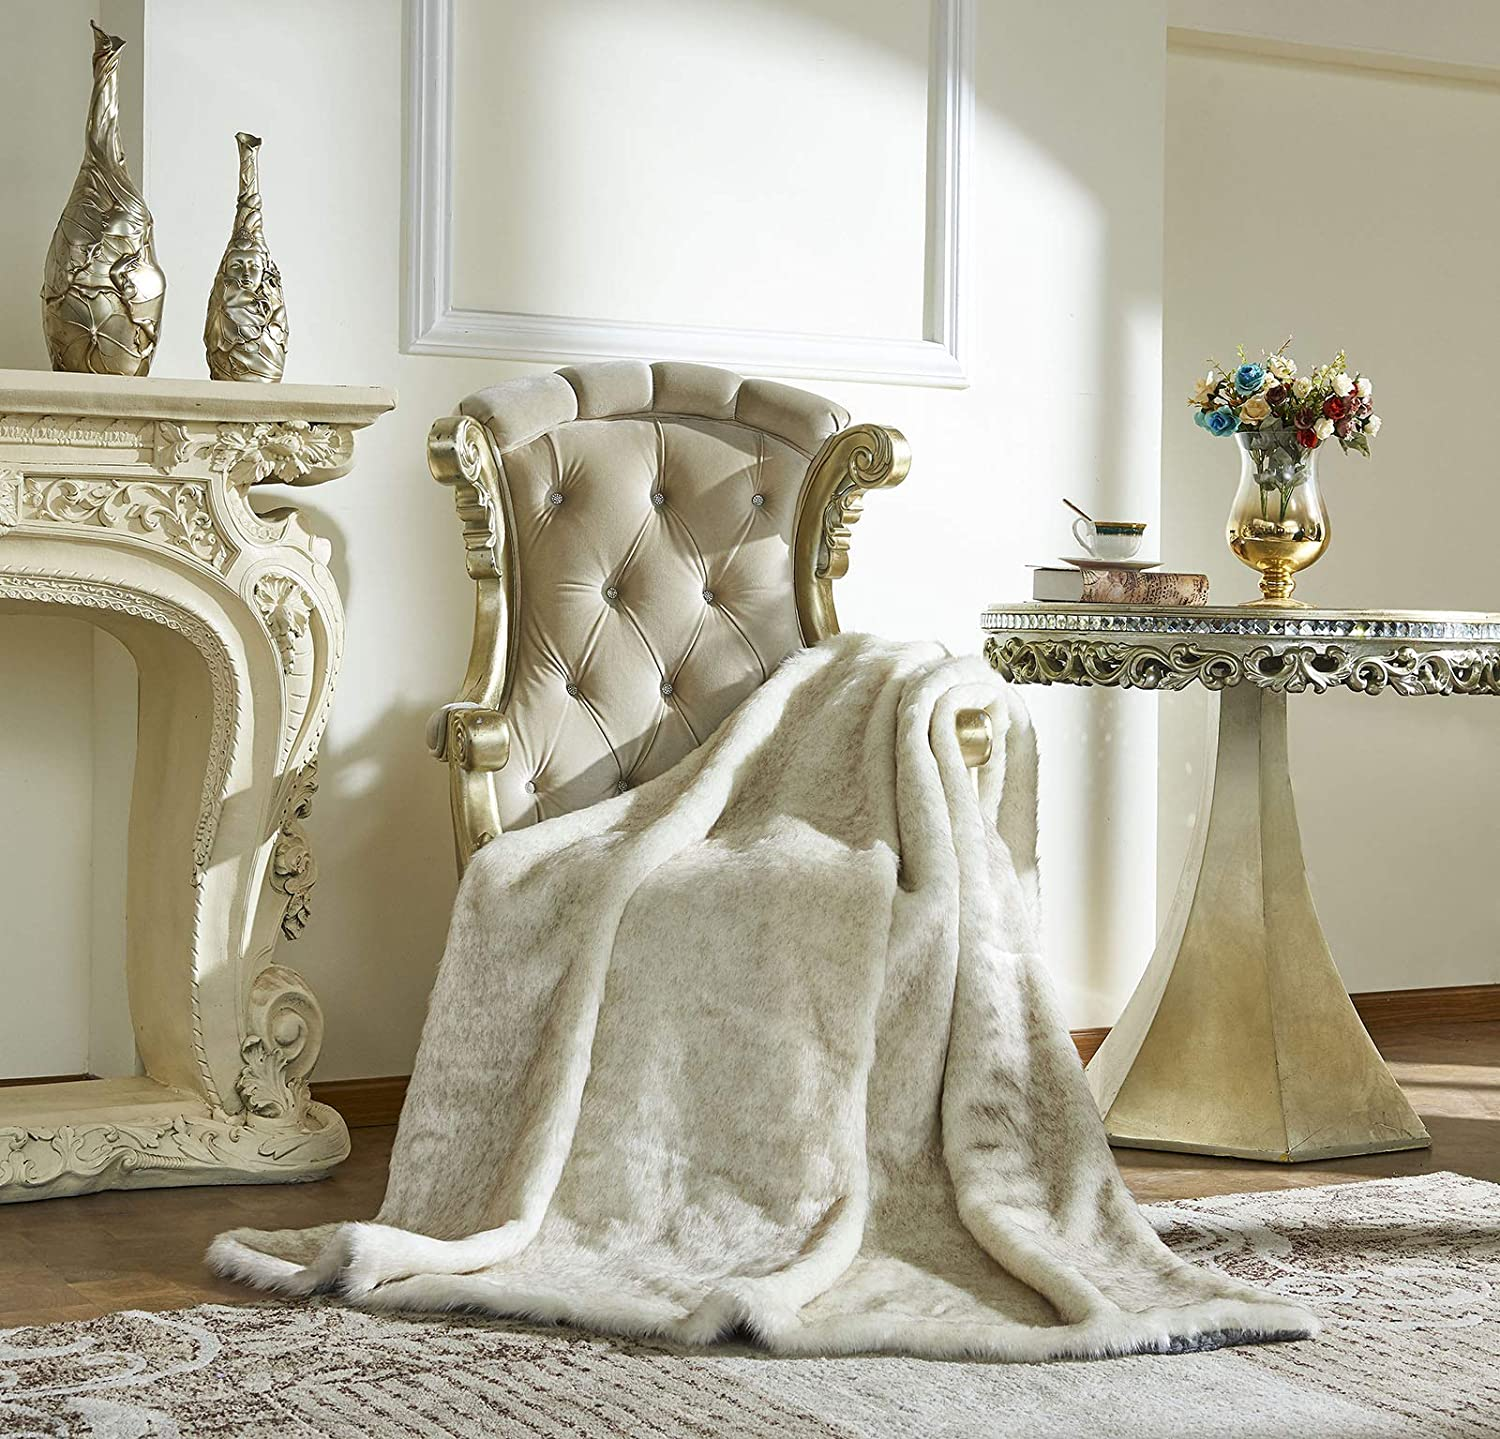 """Lindsey Home Fashion Faux Fur Throw, Blankets for Bed Super Soft Fiber, Mink, Wolf, Bear, Coyote, 60""""x84"""", 60""""x70"""", 60""""x60"""" (60x70(INCH), White Ferret)"""